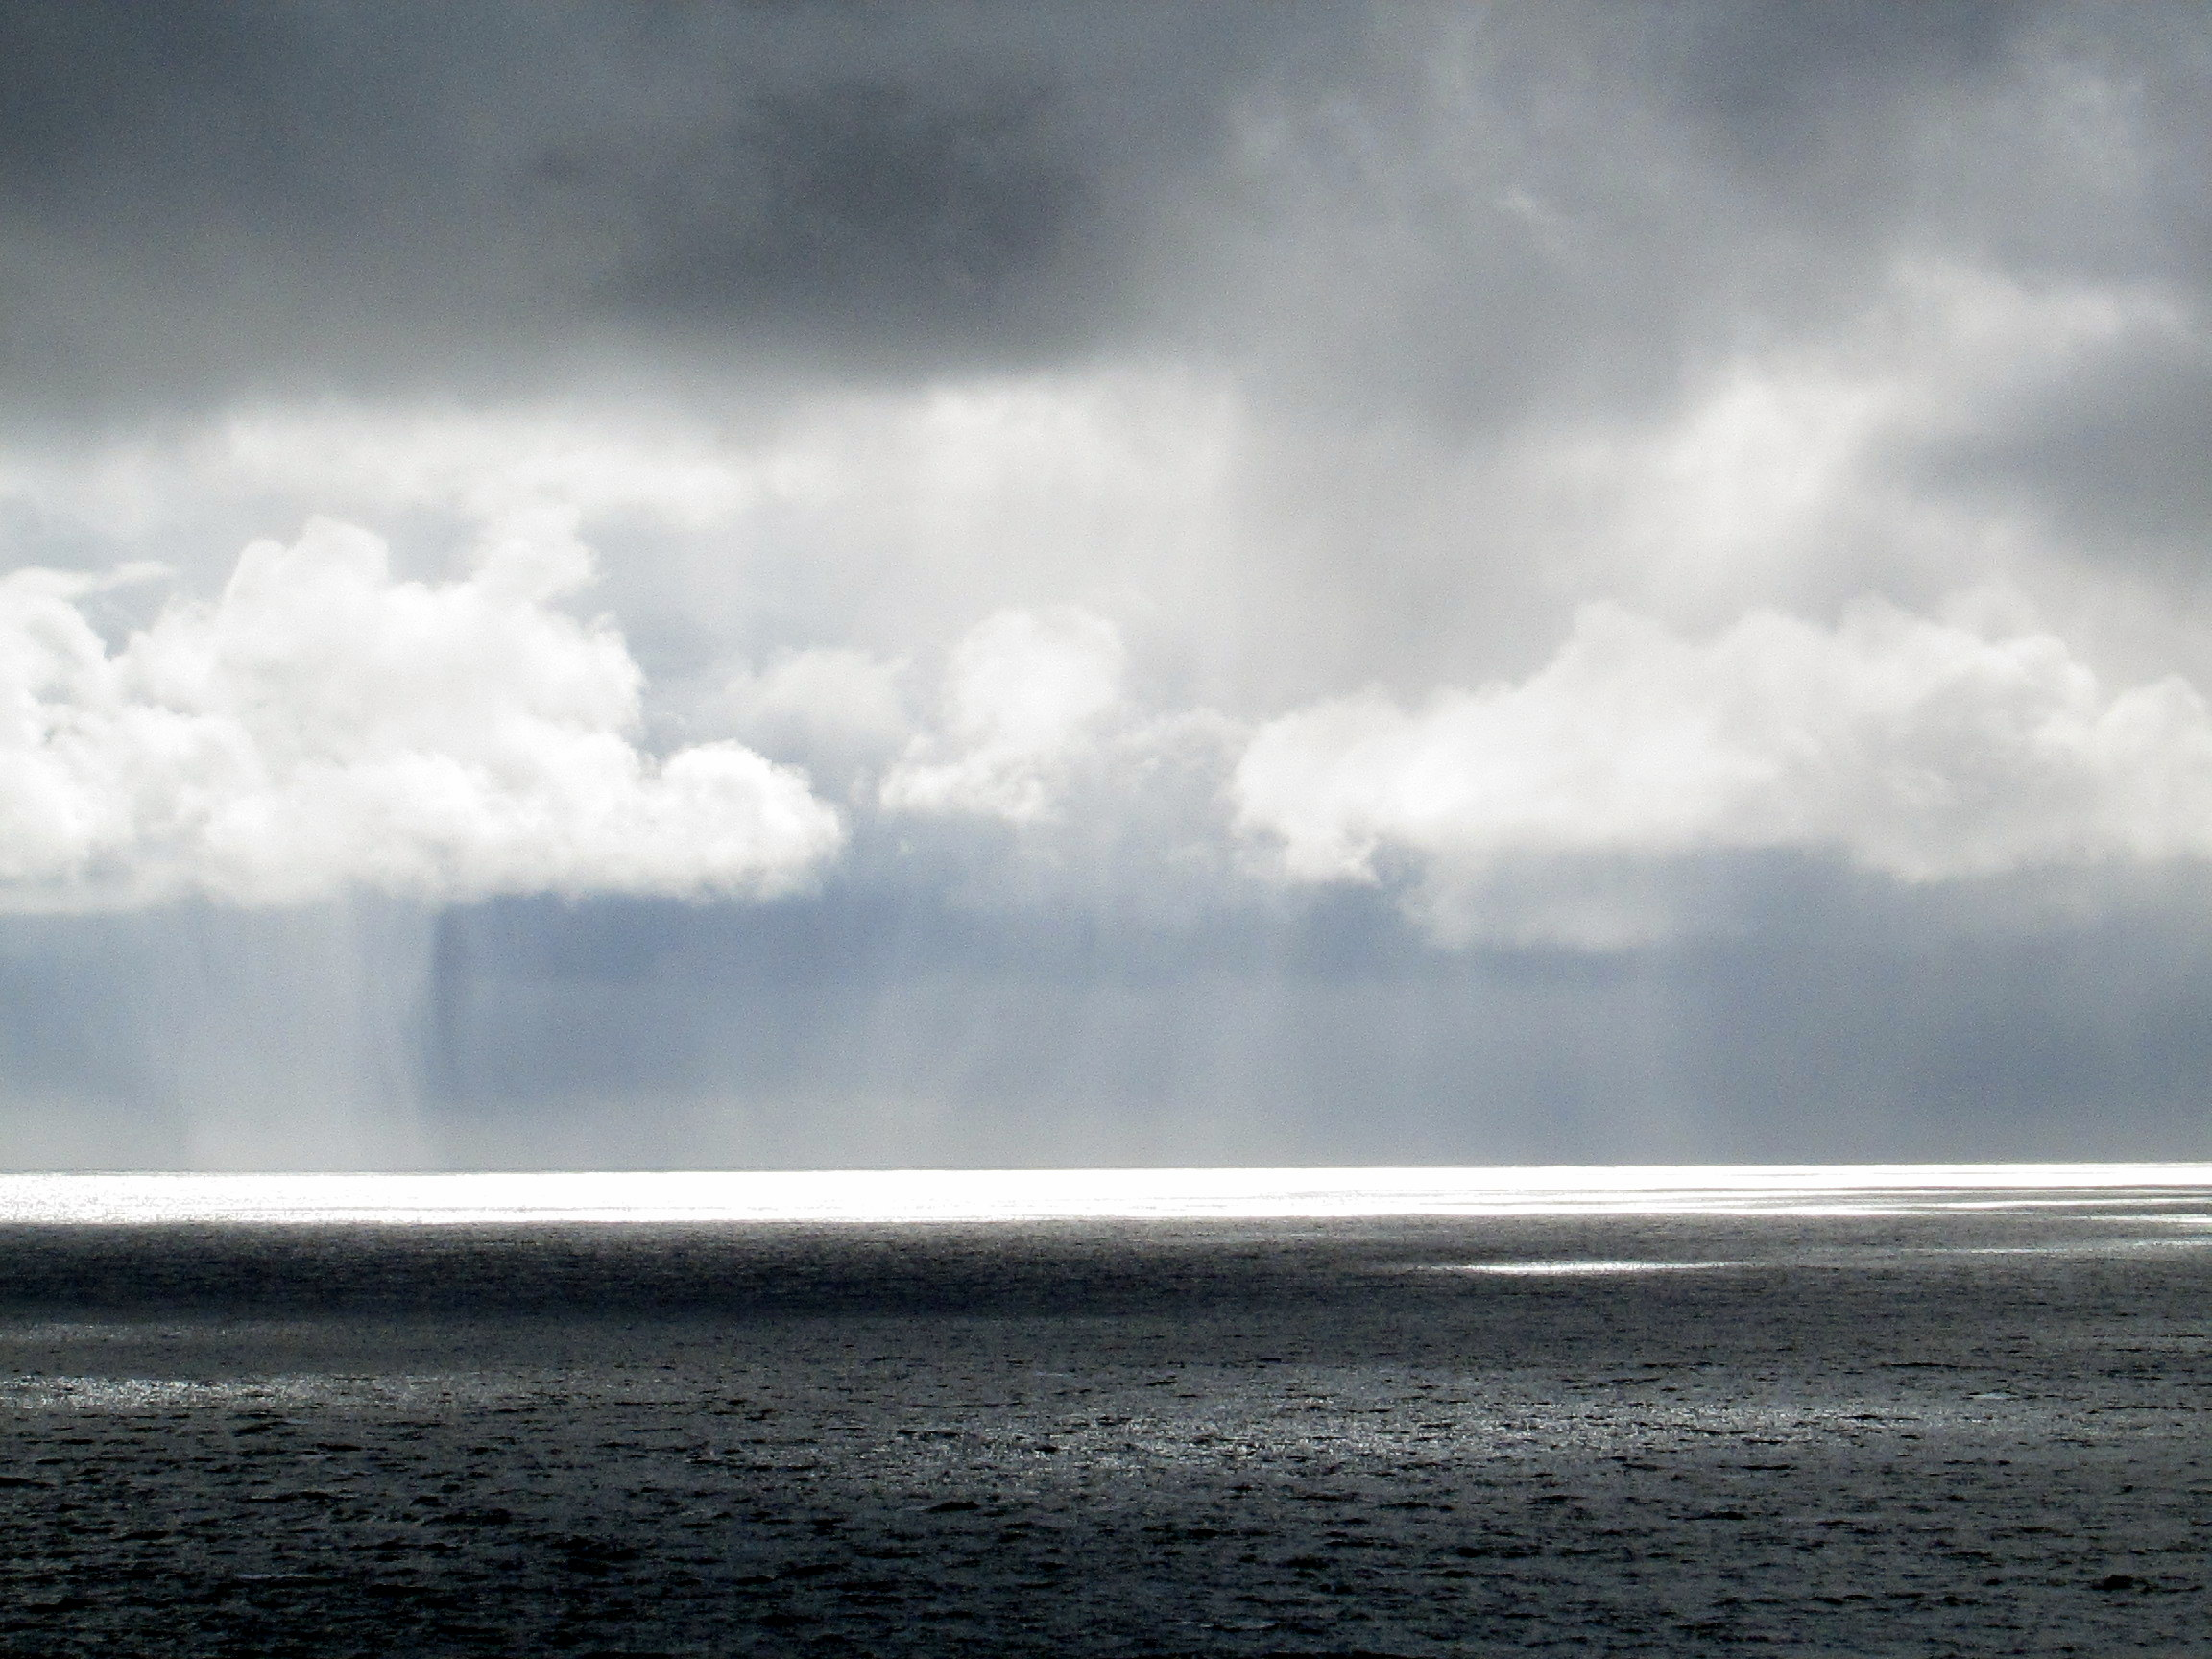 Weather off Sumburgh Head by Reading Tom. CC 2.0 https://www.flickr.com/photos/16801915@N06/18443003173/